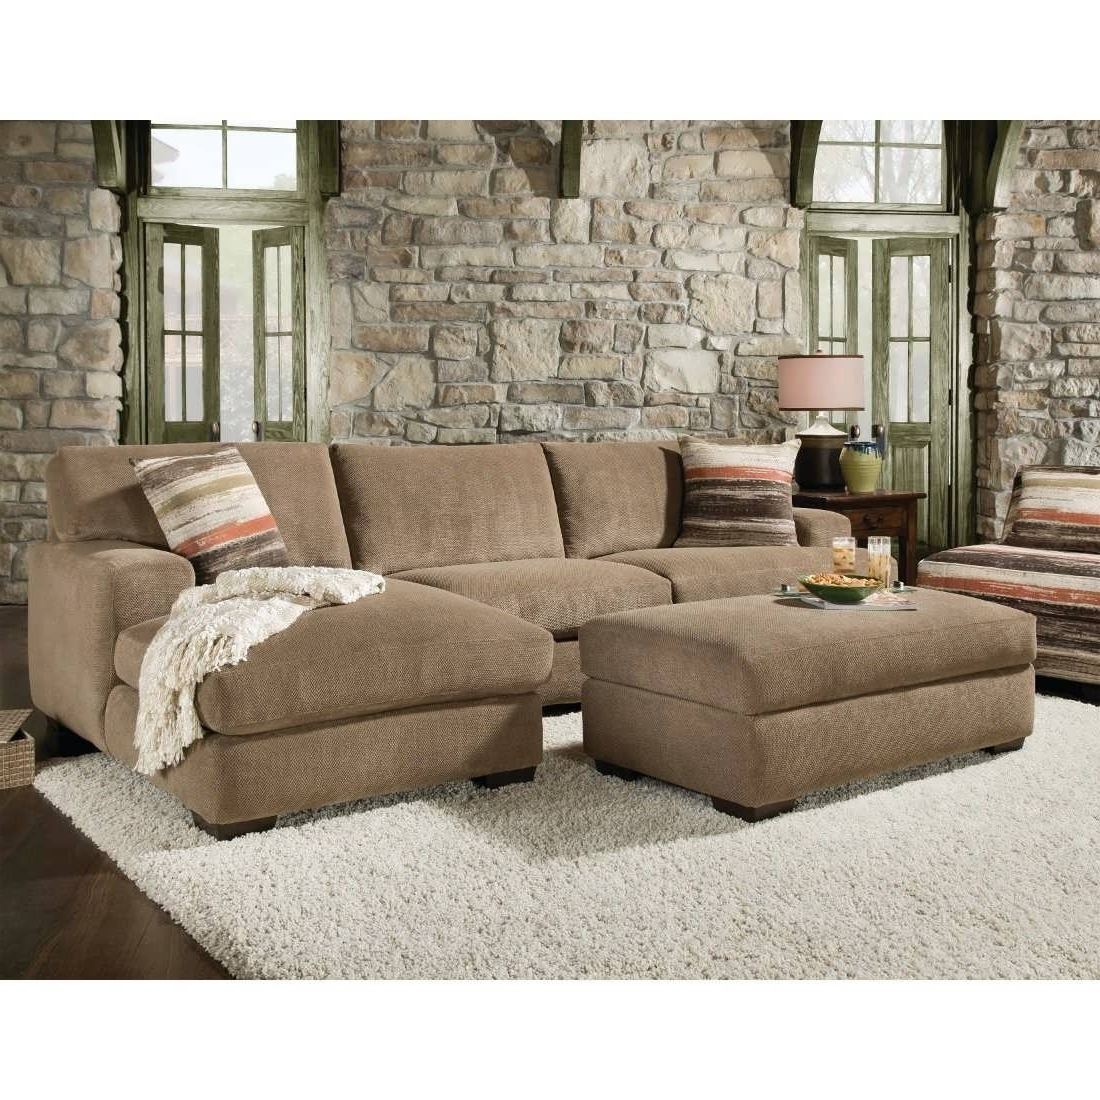 beige microfiber sectional sofa with storage chaise king jokes like 15 photos sofas